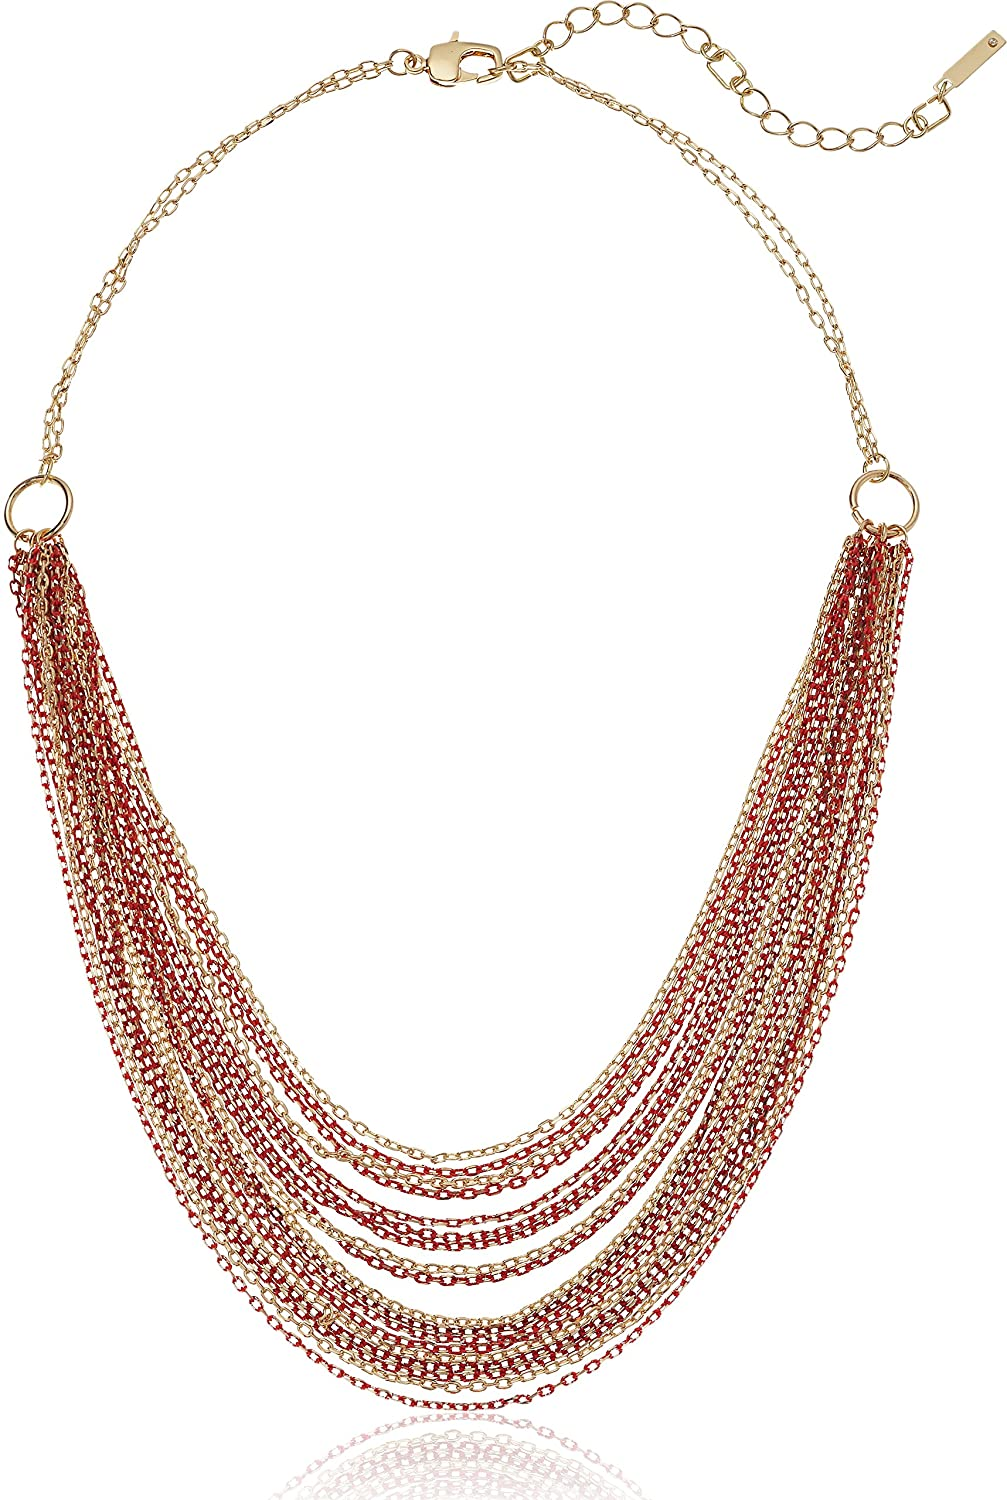 Kenneth Cole New York Women's Short Multi Row Chain Strand Necklace, Coral, One Size Kenneth Cole Jewelry K10267-N03